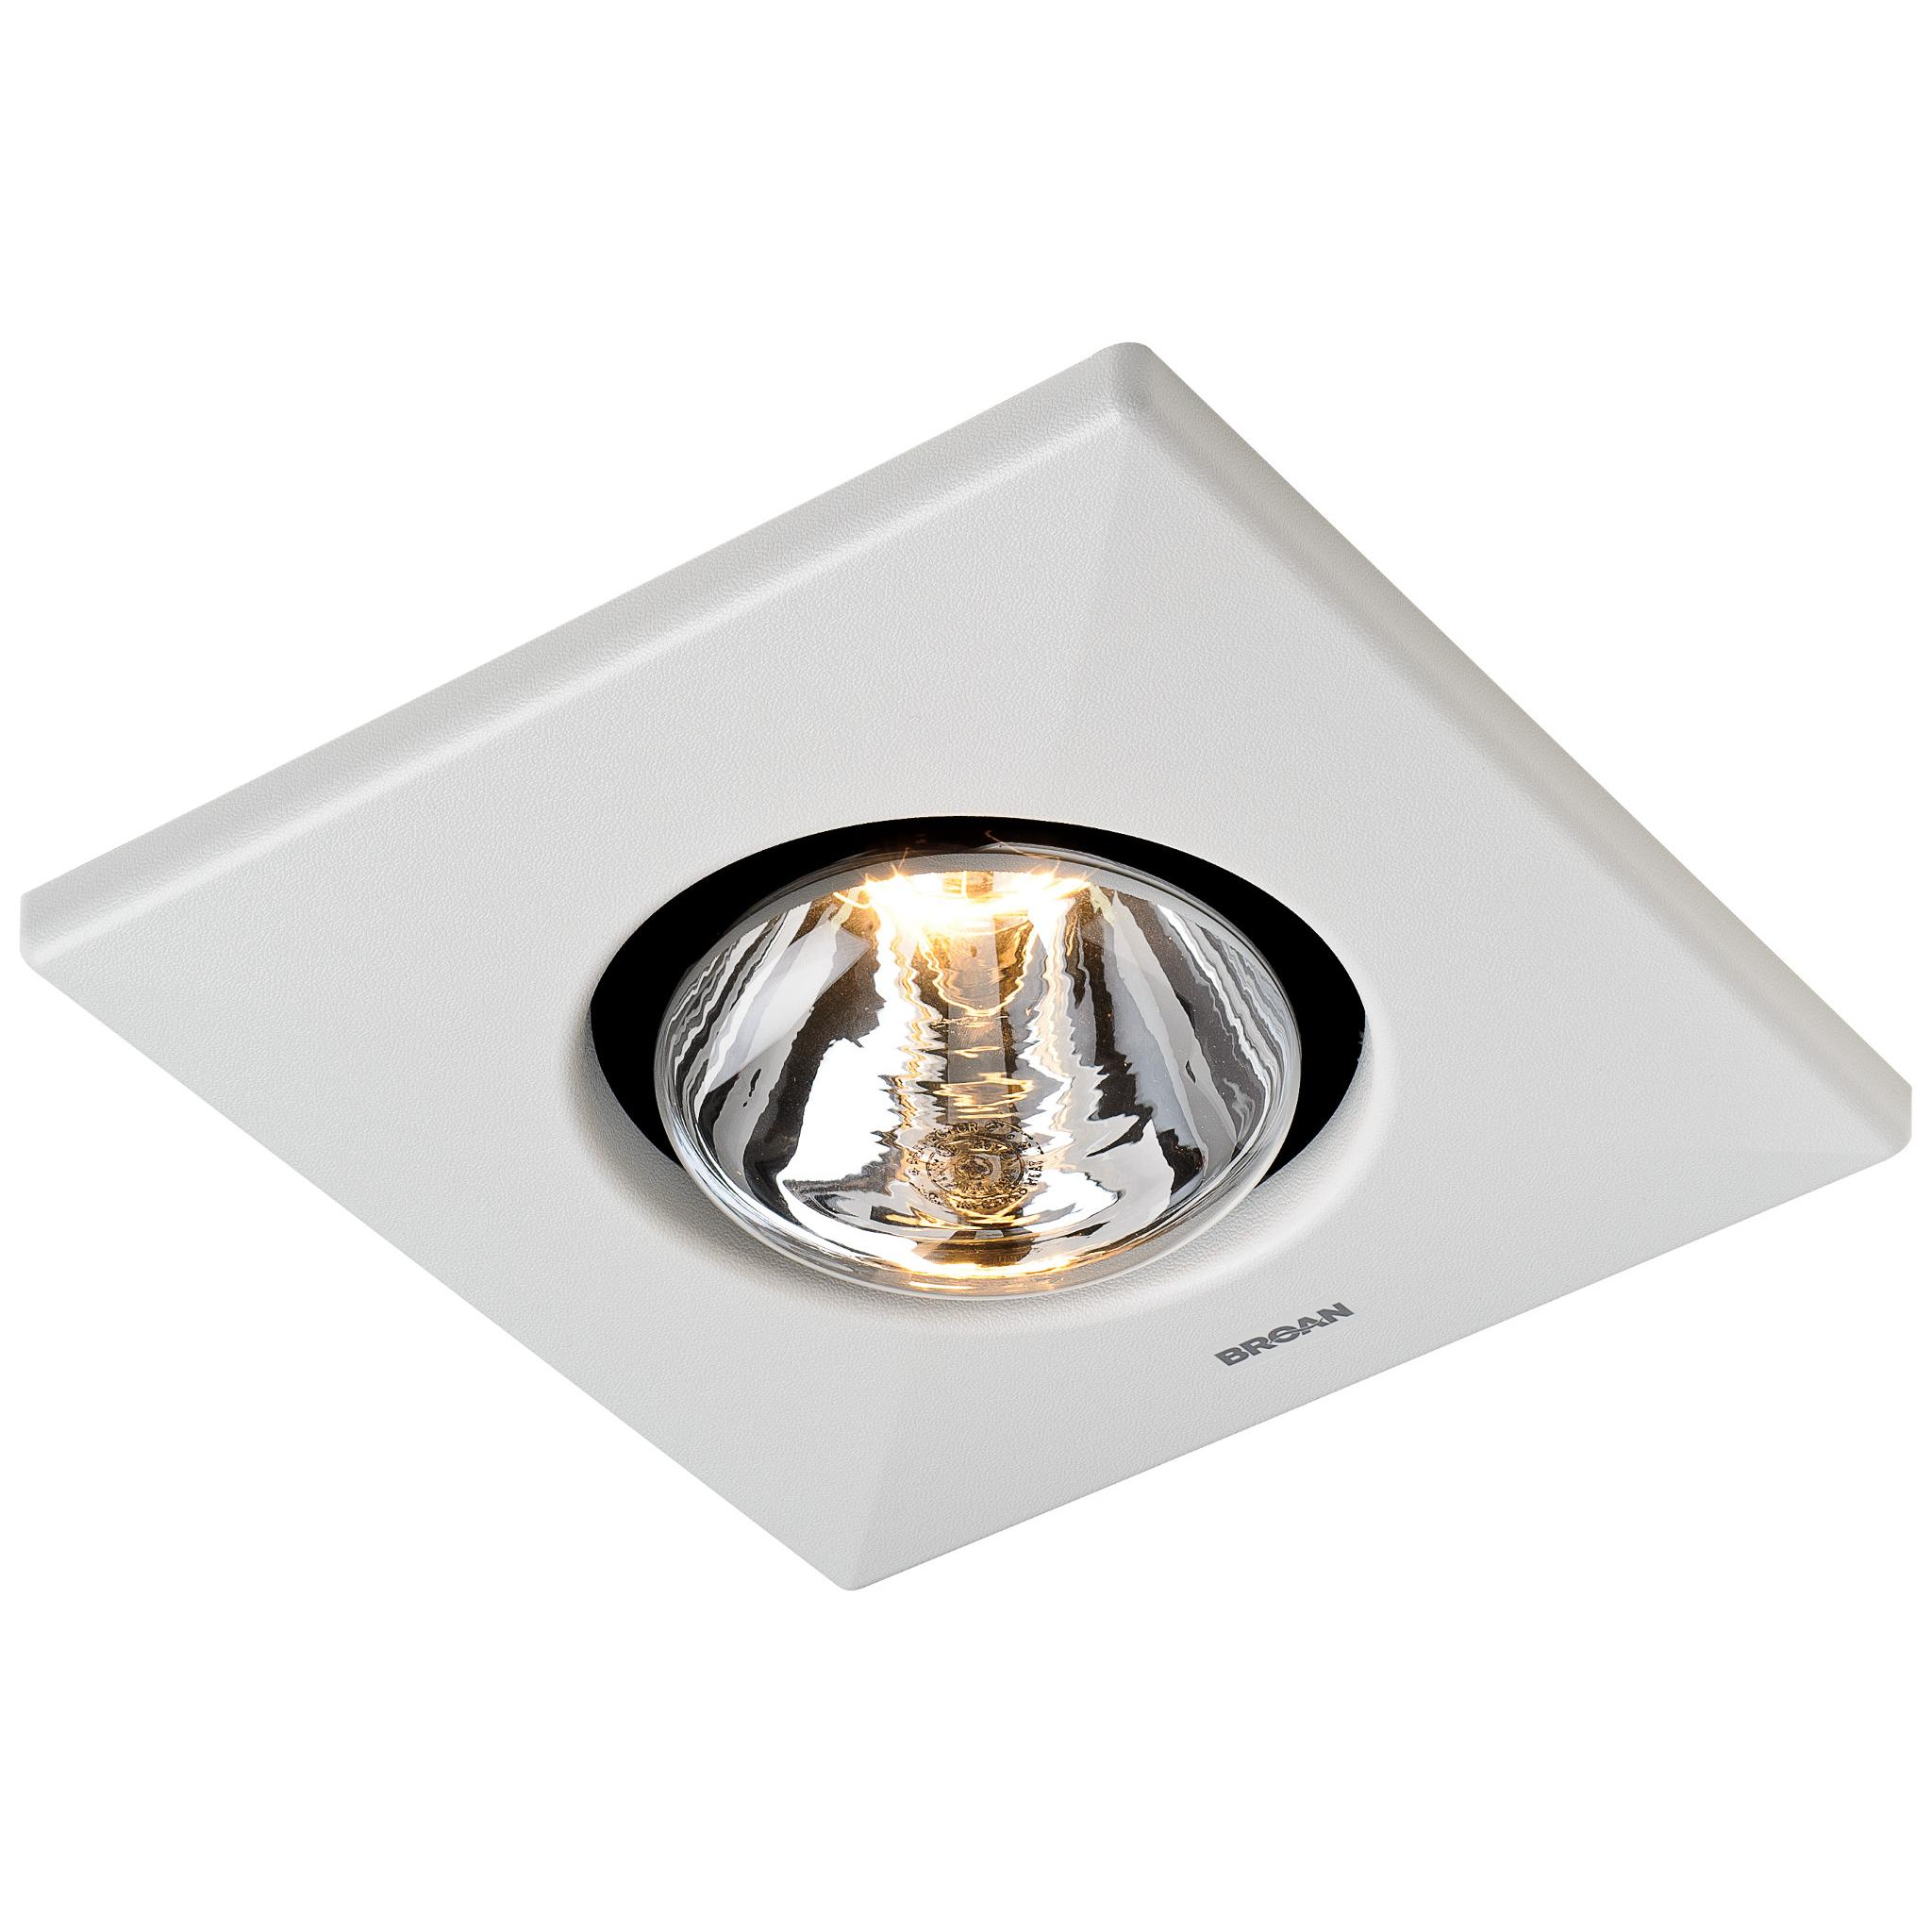 Broan 164 Type Ic Infrared Two Bulb Ceiling Heater With 4 Inch Round Duct Connector 250 Watt